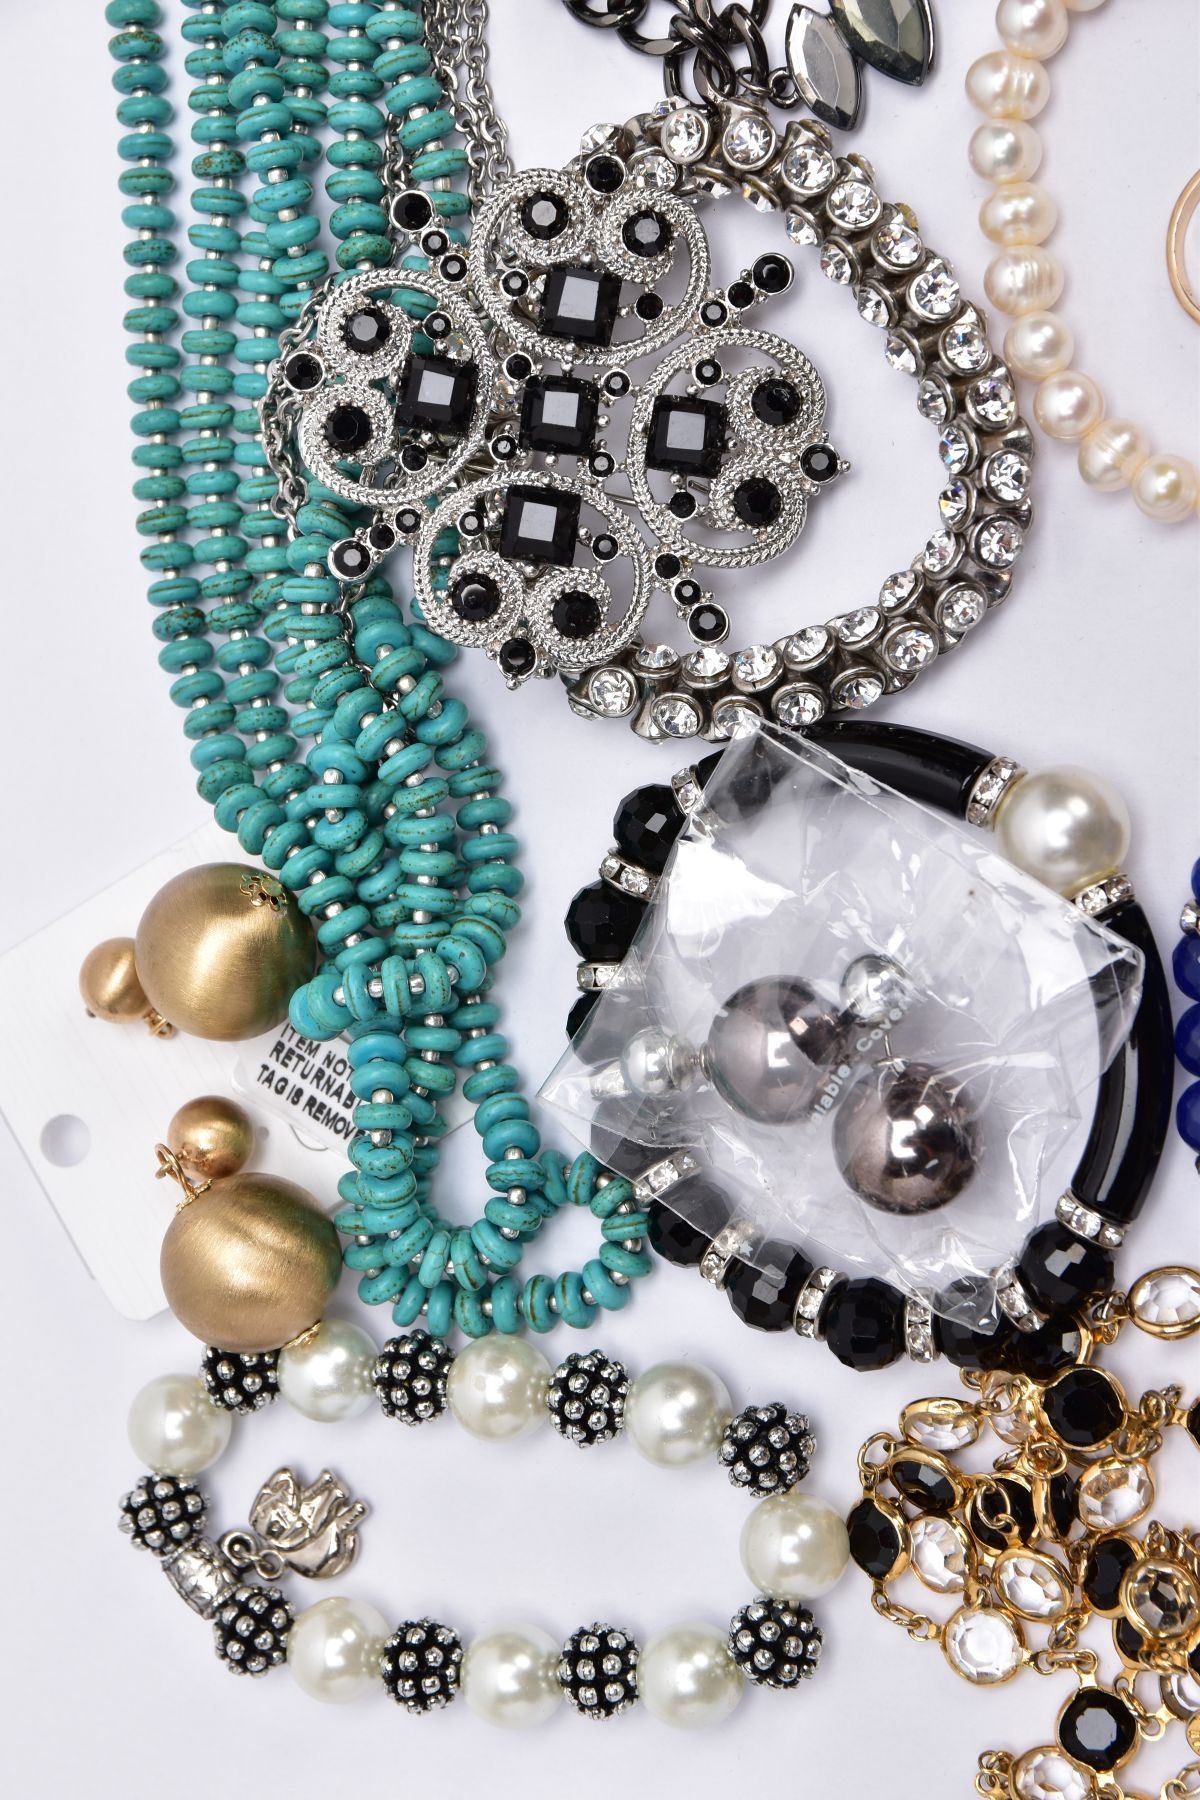 A BAG OF ASSORTED COSTUME JEWELLERY, to include a rose gold tone necklet set with cubic zirconia - Image 2 of 5